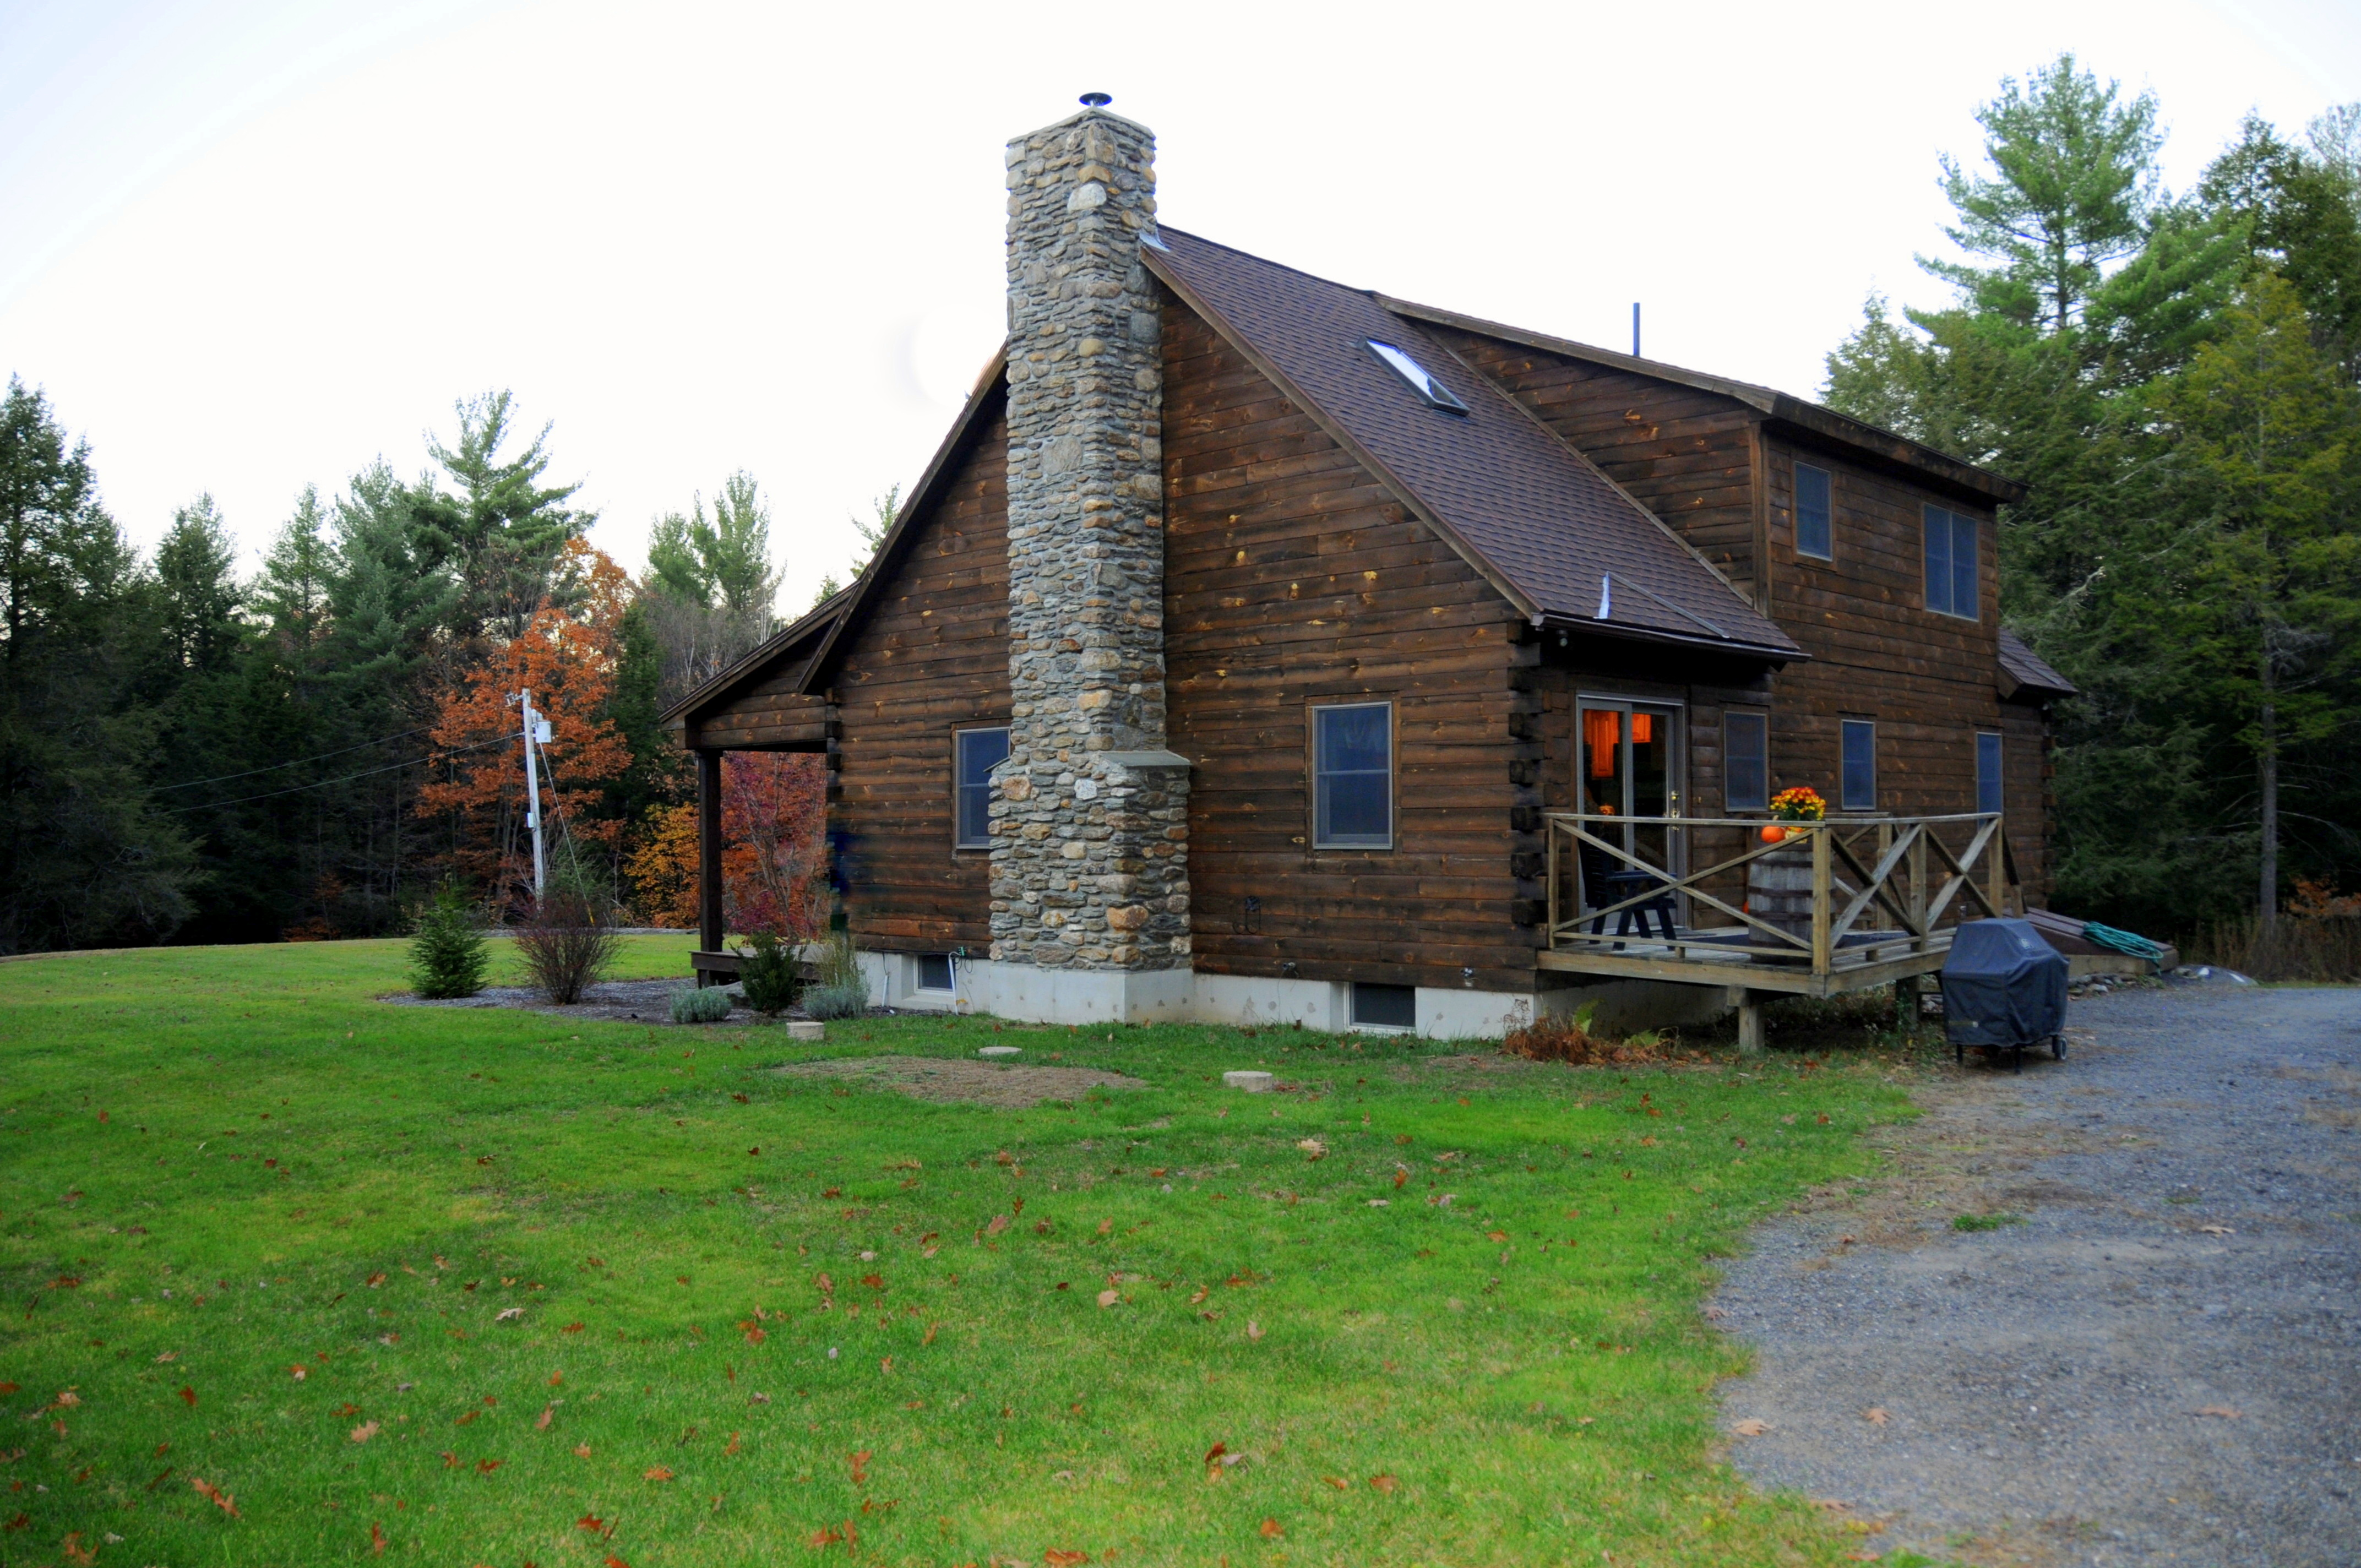 Maison unifamiliale pour l Vente à Log Home on 39+ Acres 65 Pitcherville Road Hubbardston, Massachusetts, 01452 États-Unis